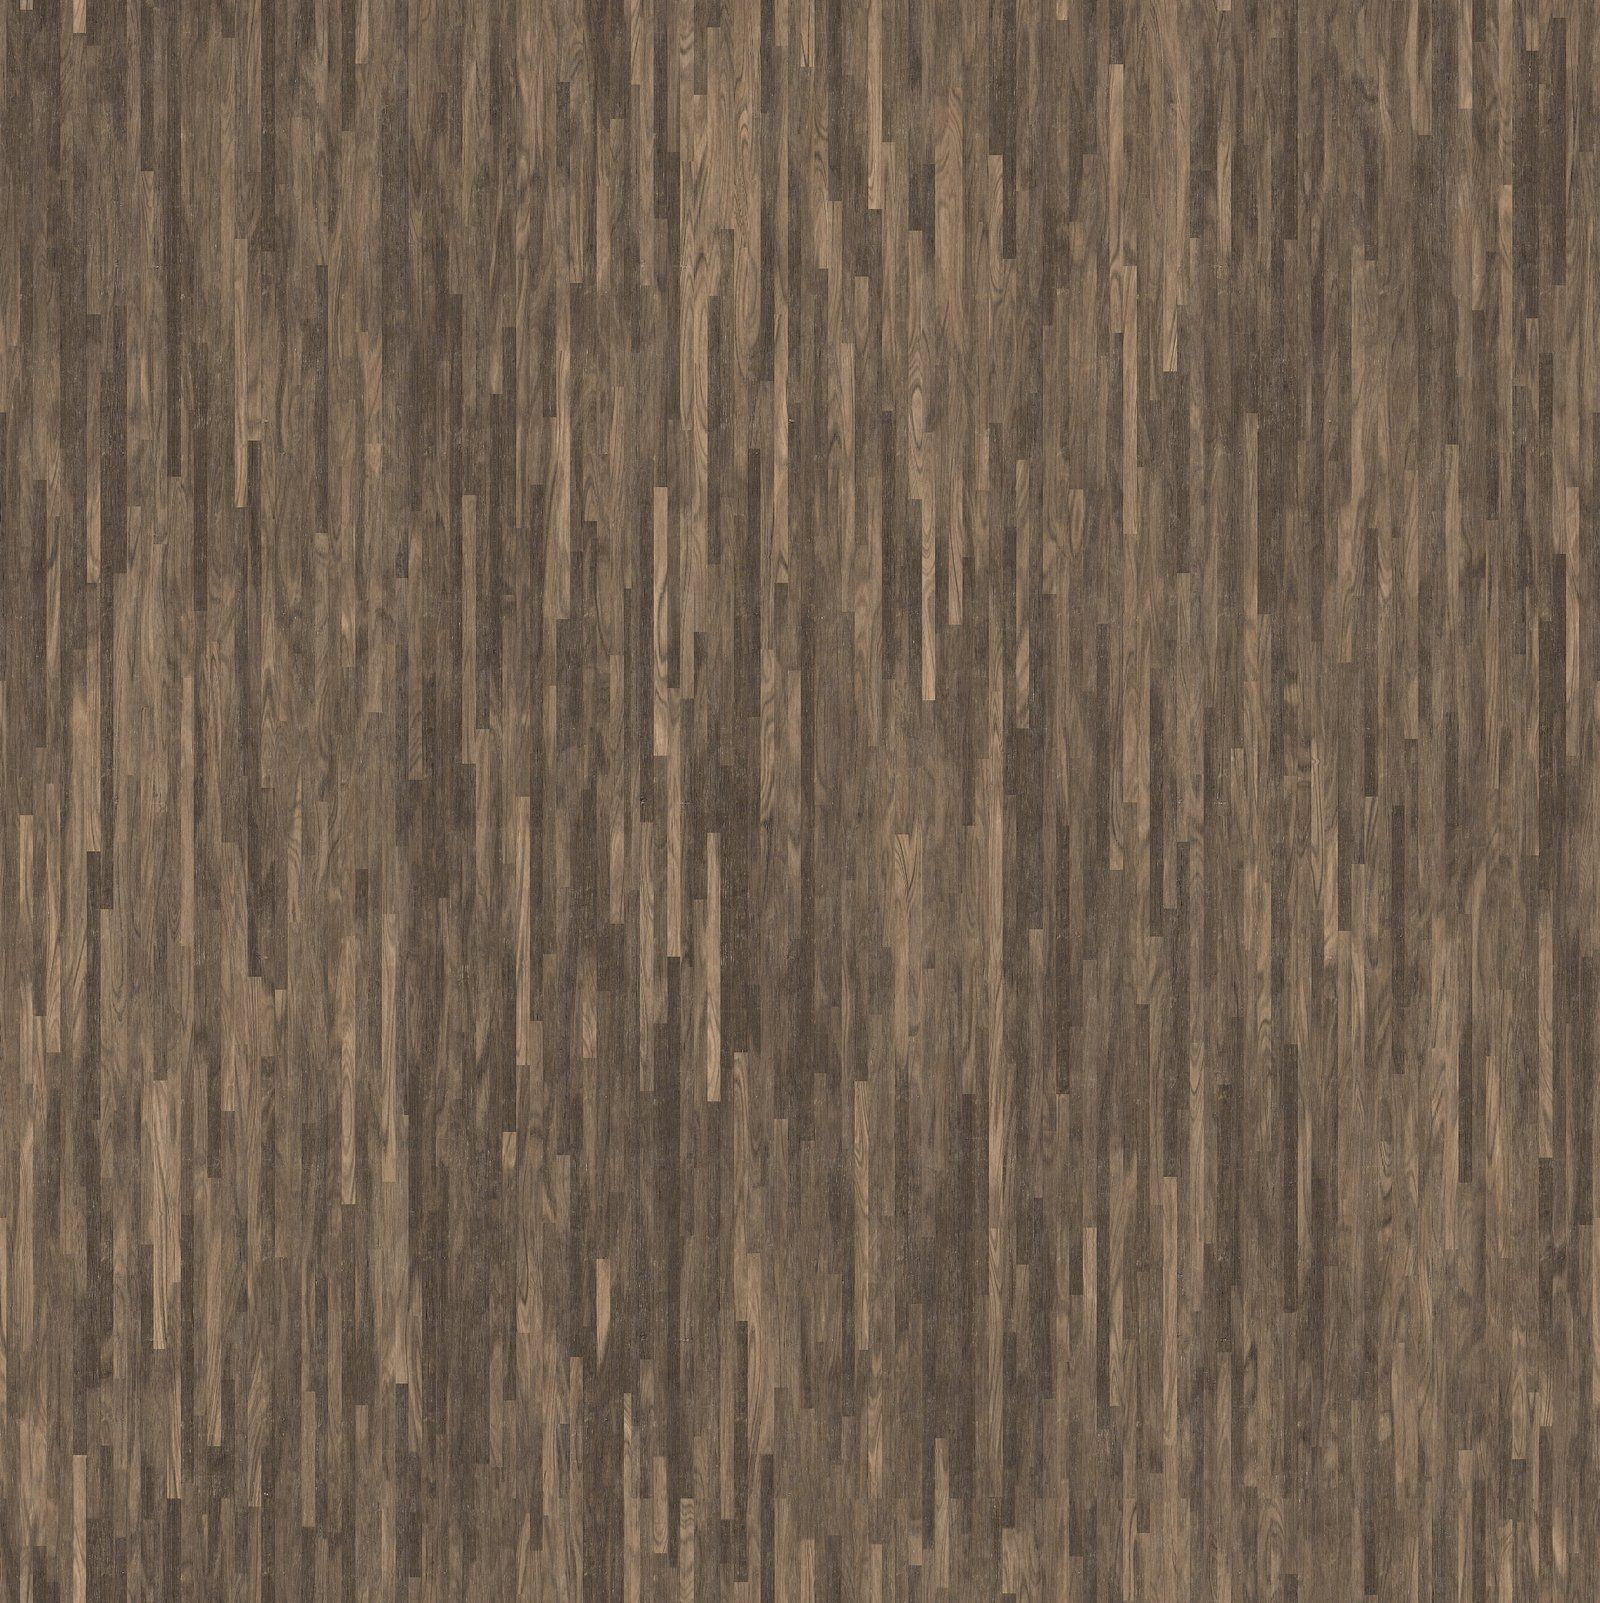 Wood Floor Seamless By AGF81deviantartcom On deviantART Texture